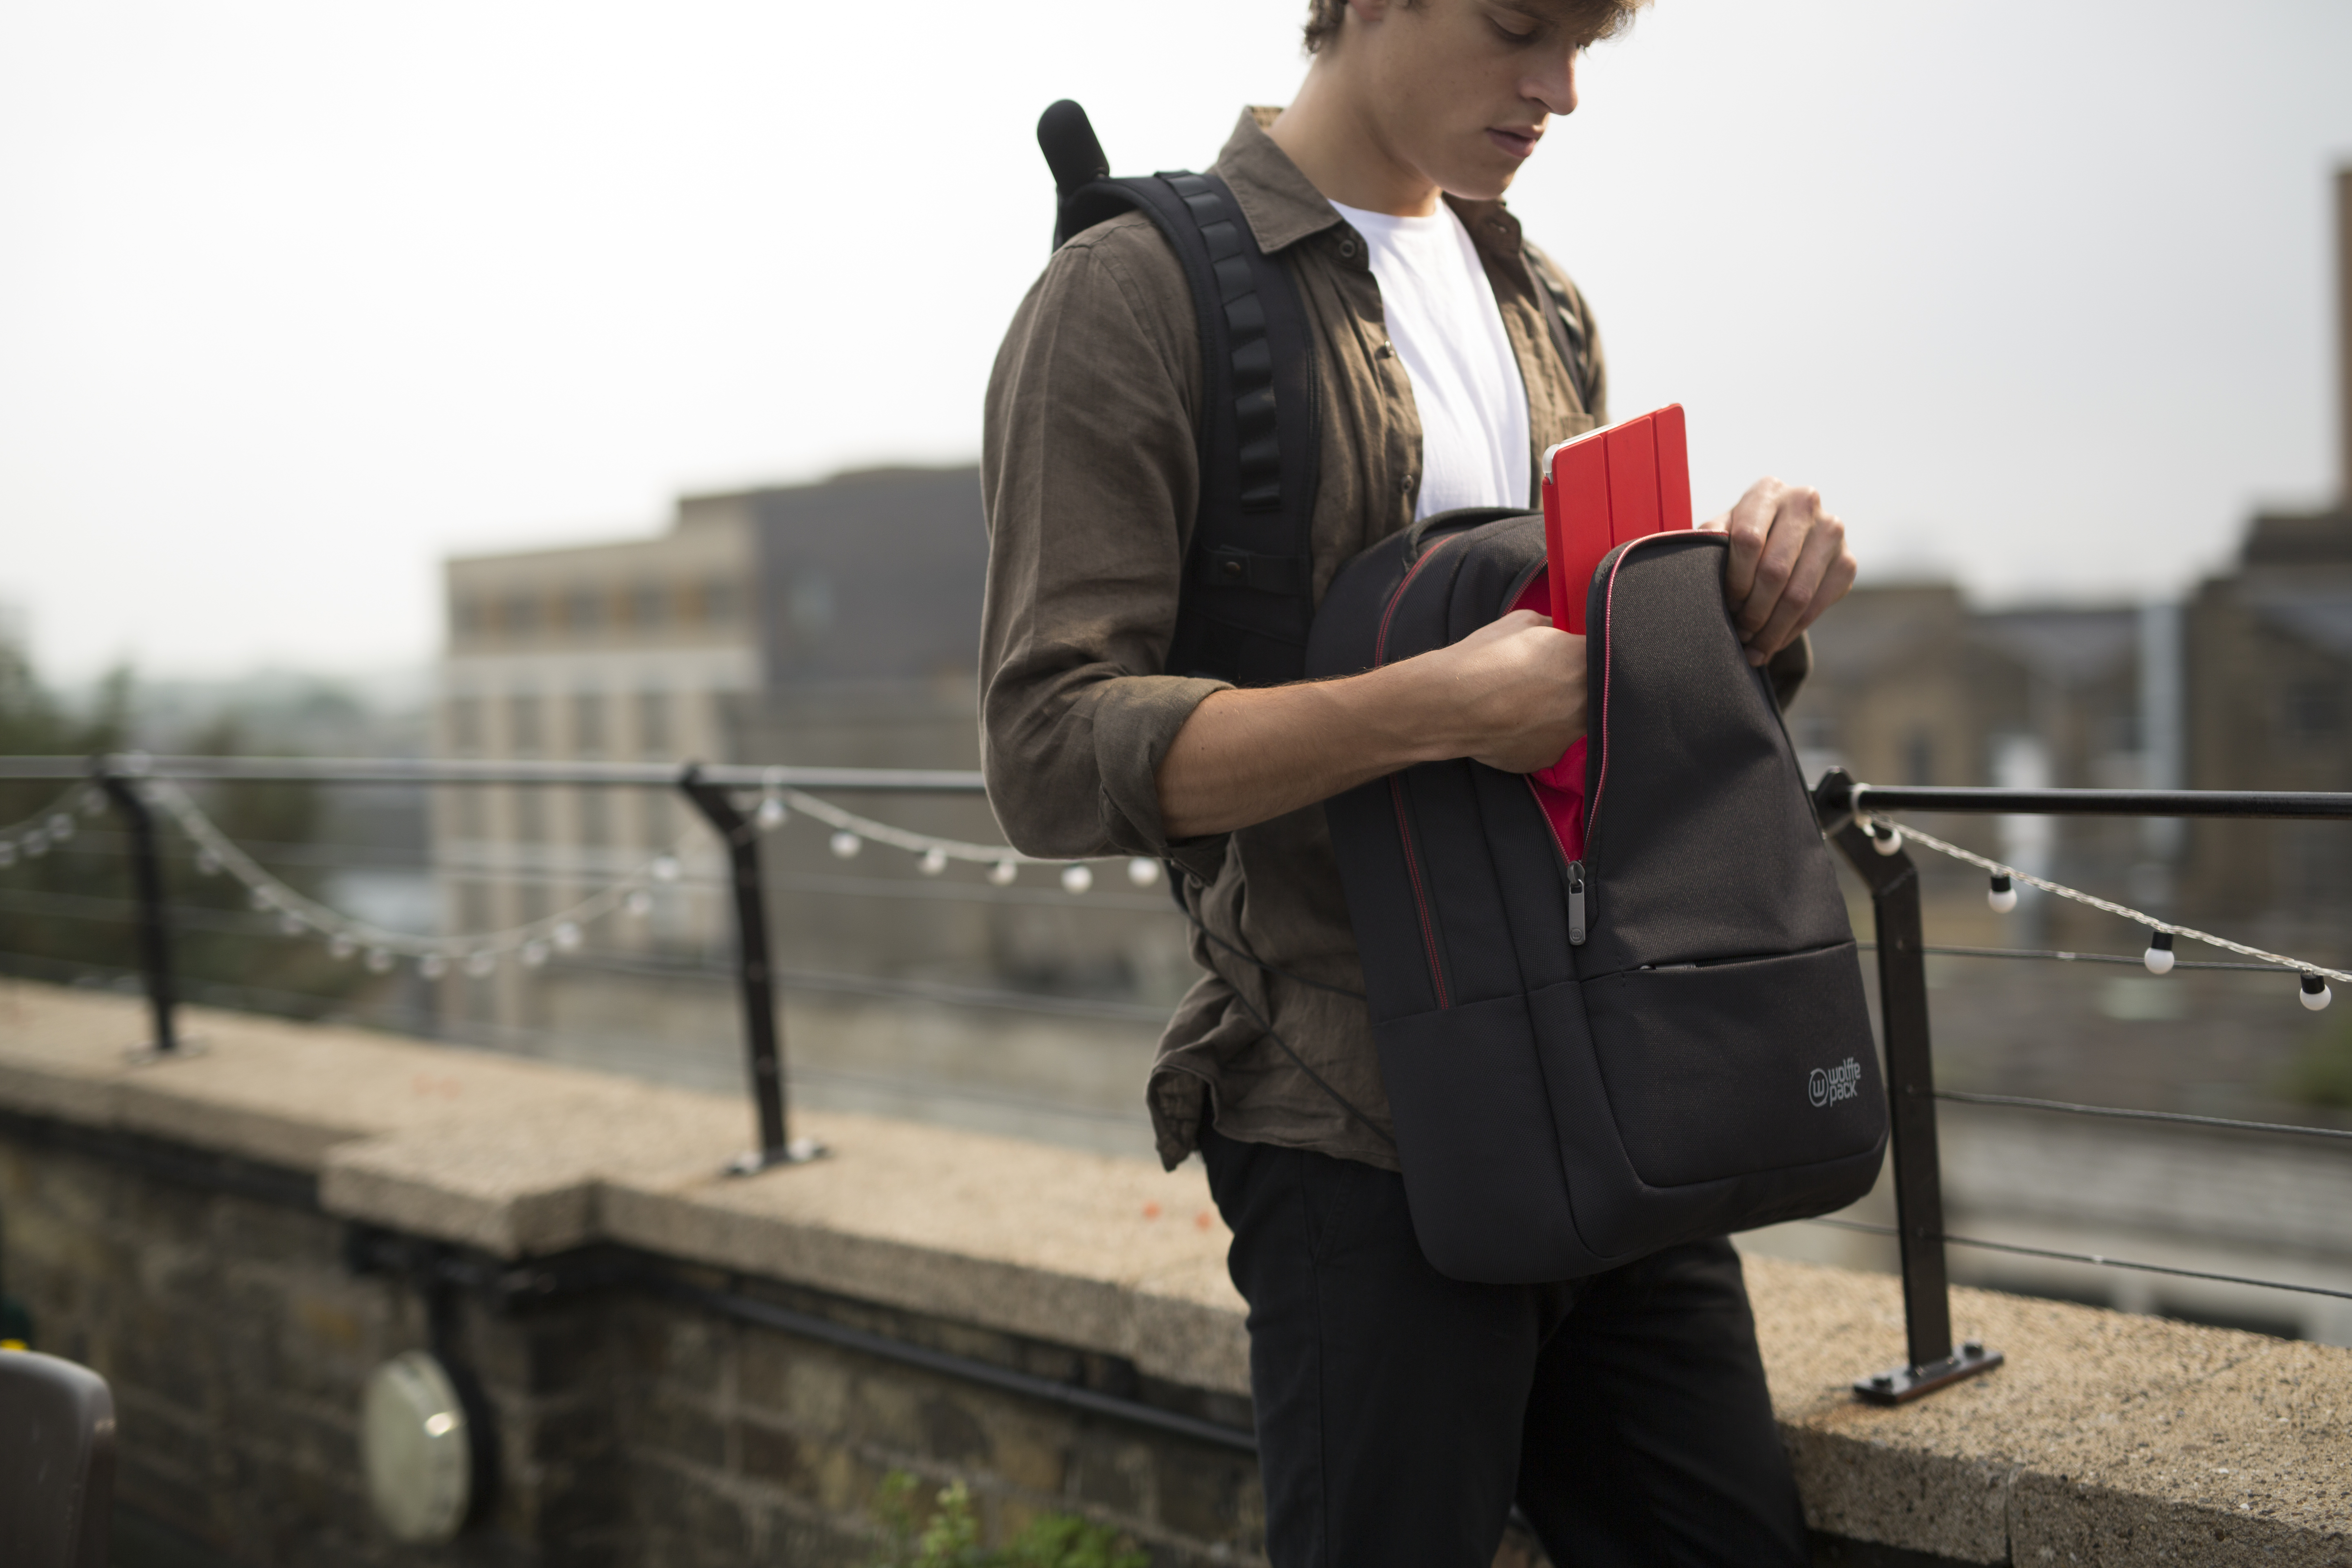 Aiming to do to backpacks what Dyson has done to vacuum cleaners